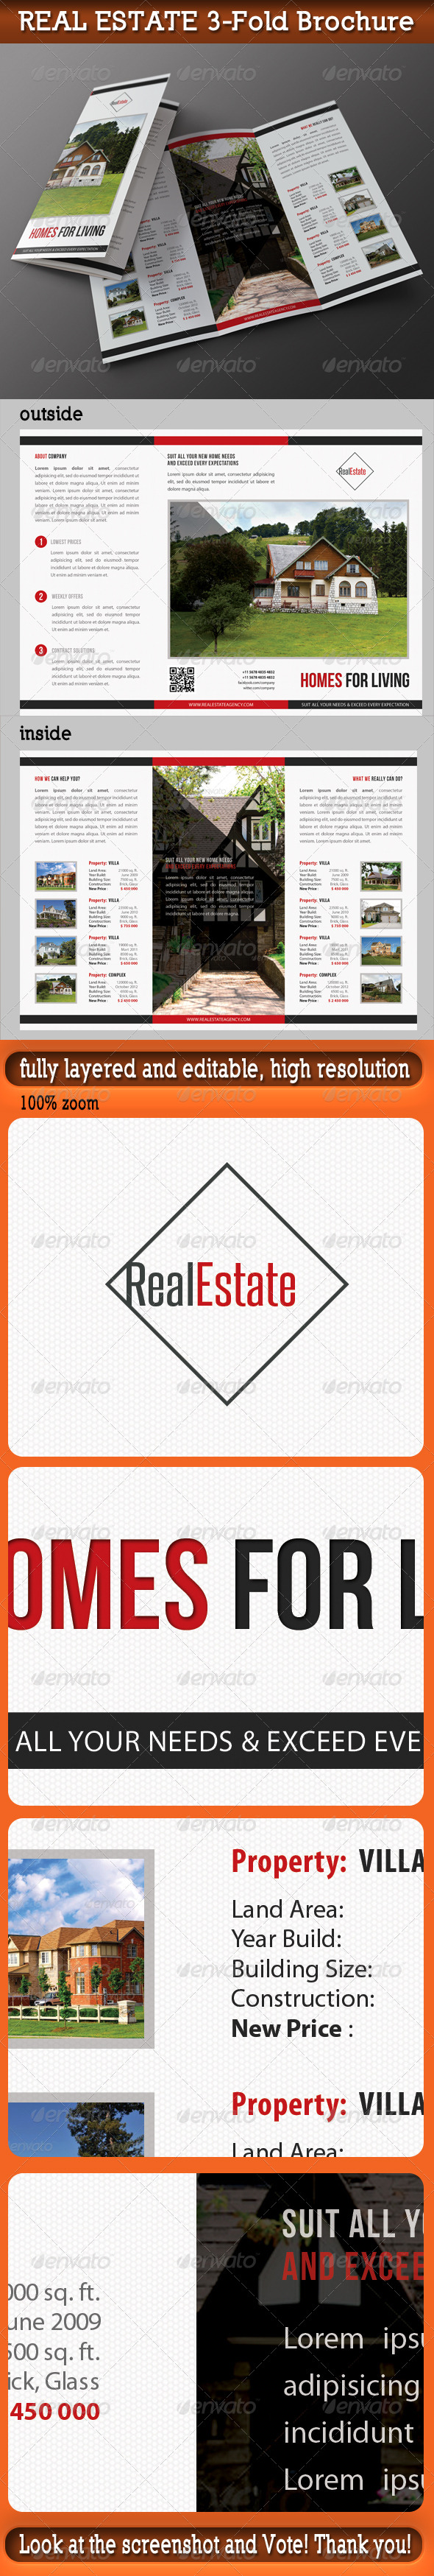 GraphicRiver Real Estate 3-Fold Brochure 01 7354154